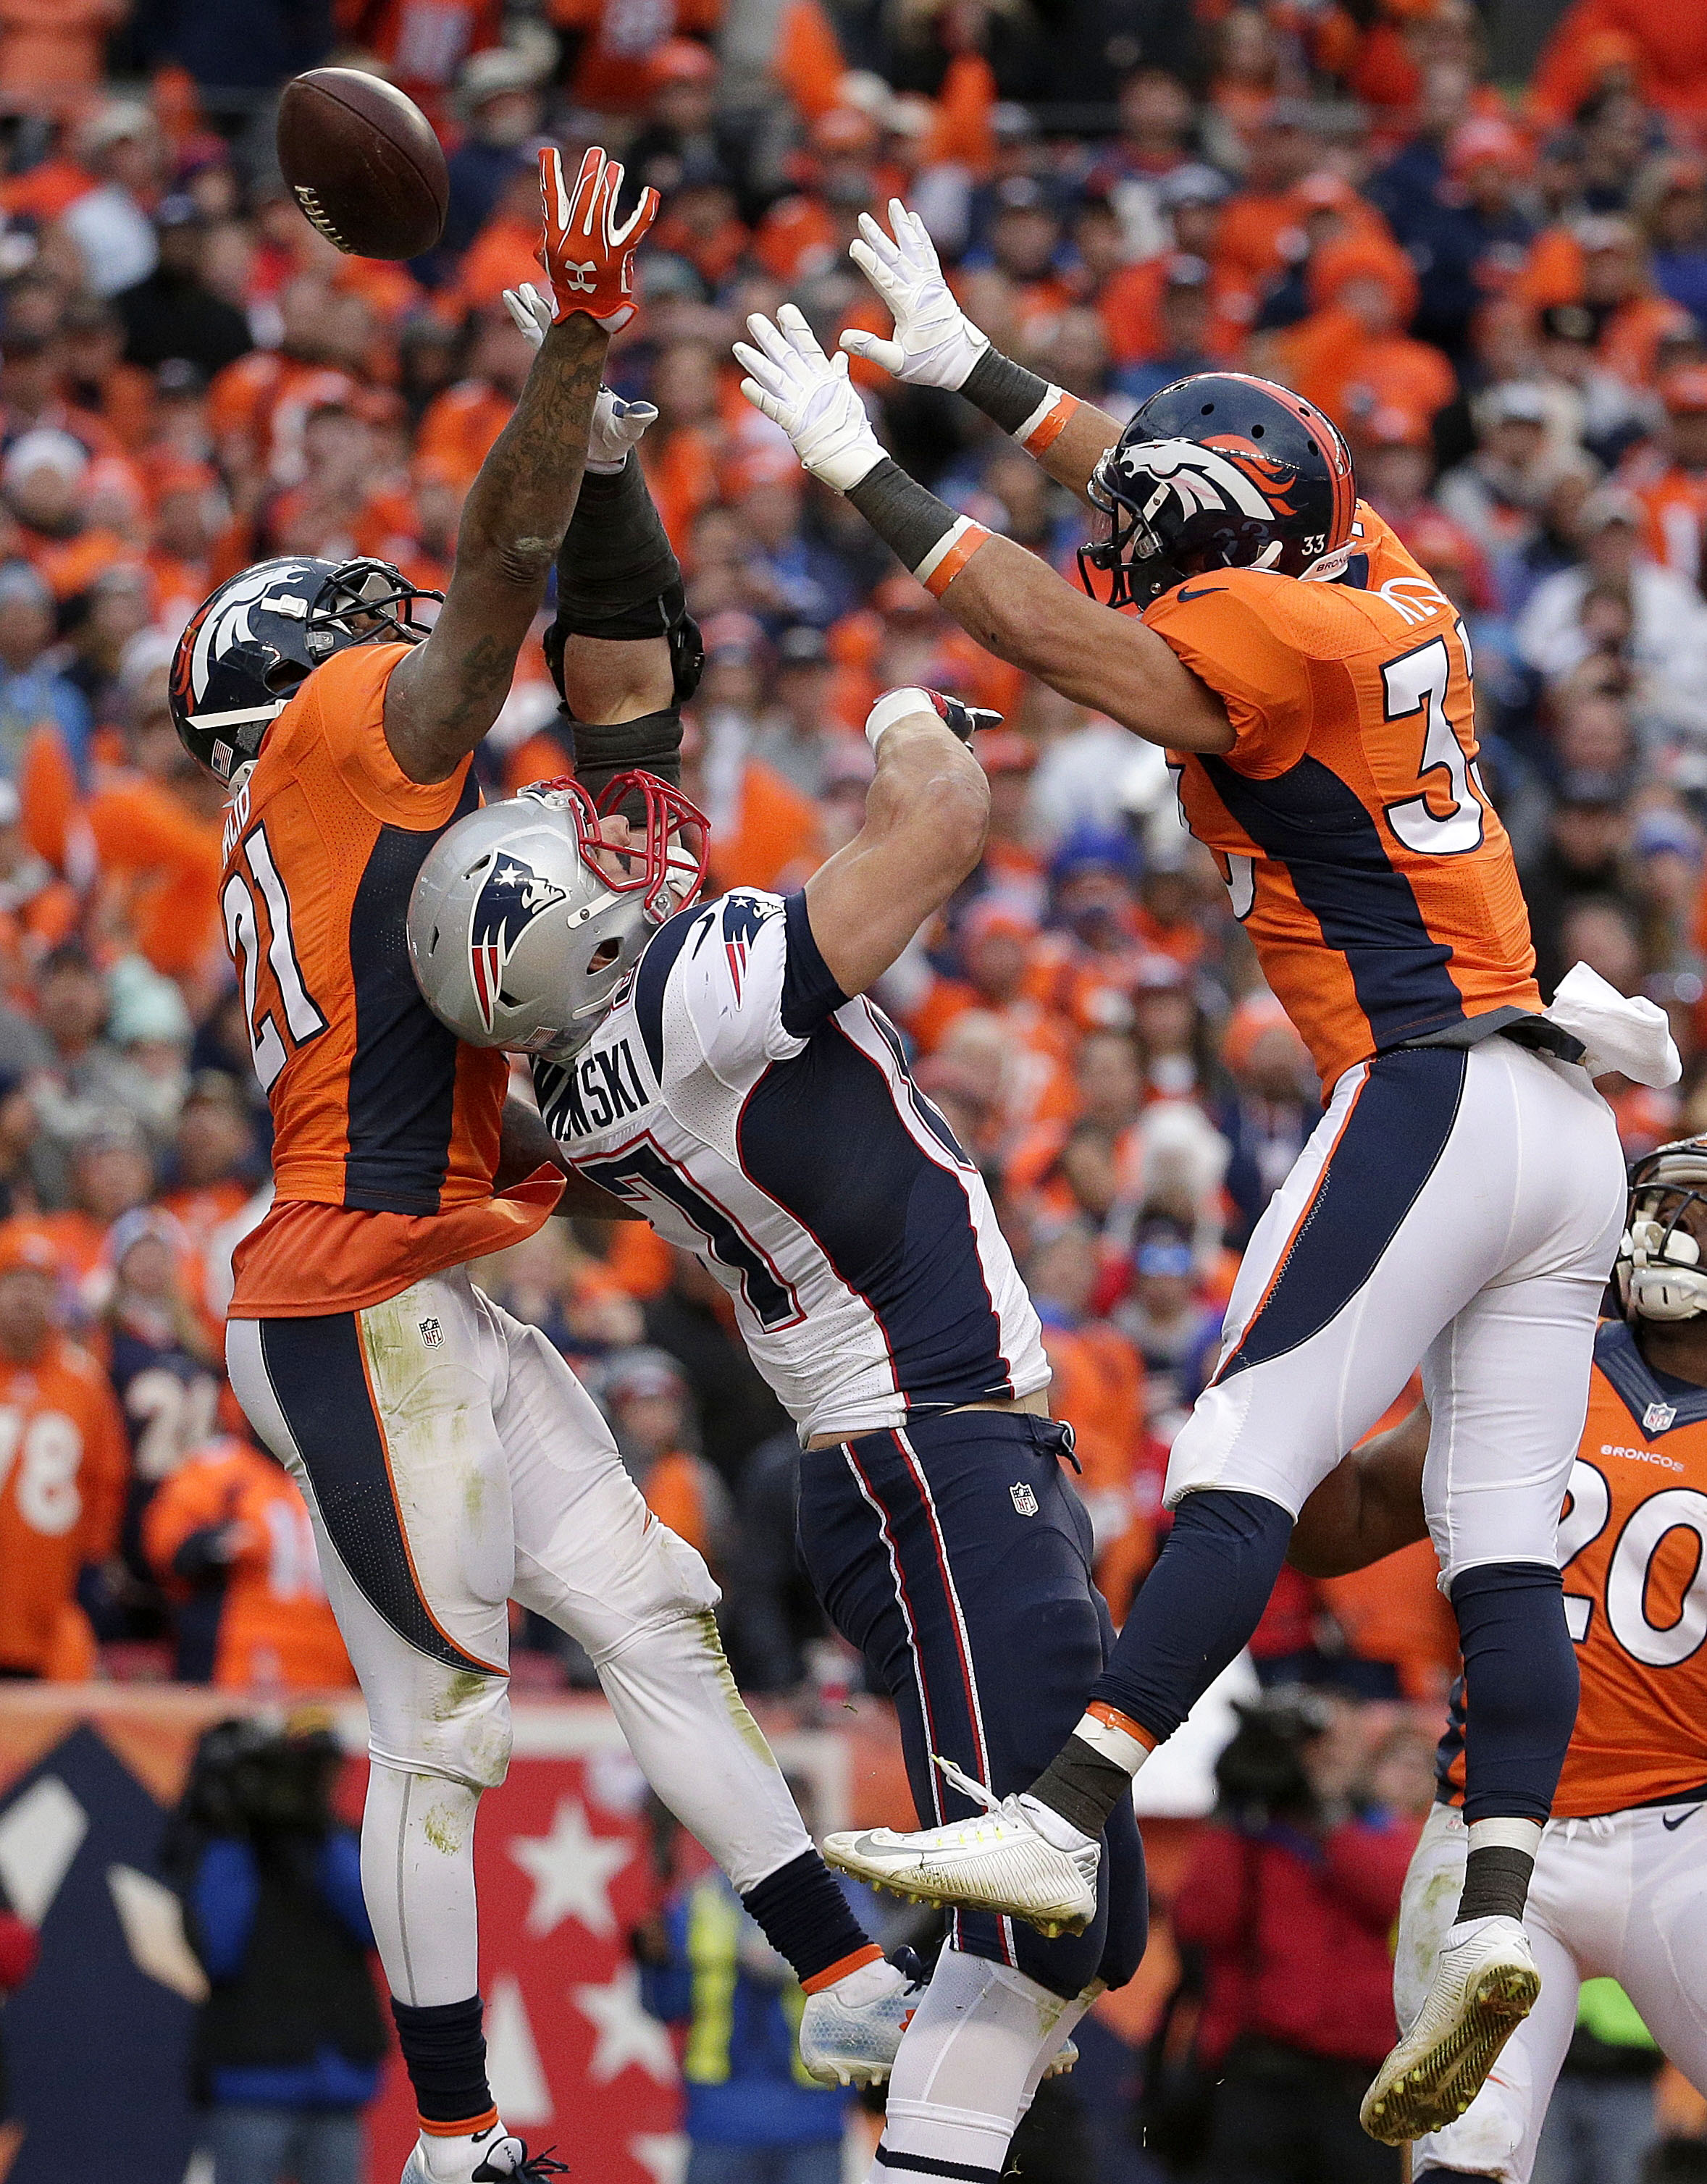 New England Patriots tight end Rob Gronkowski (87) is defended by Denver Broncos cornerback Aqib Talib (21) and defensive back Shiloh Keo during the second half of the NFL football AFC Championship game between the Denver Broncos and the New England Patri